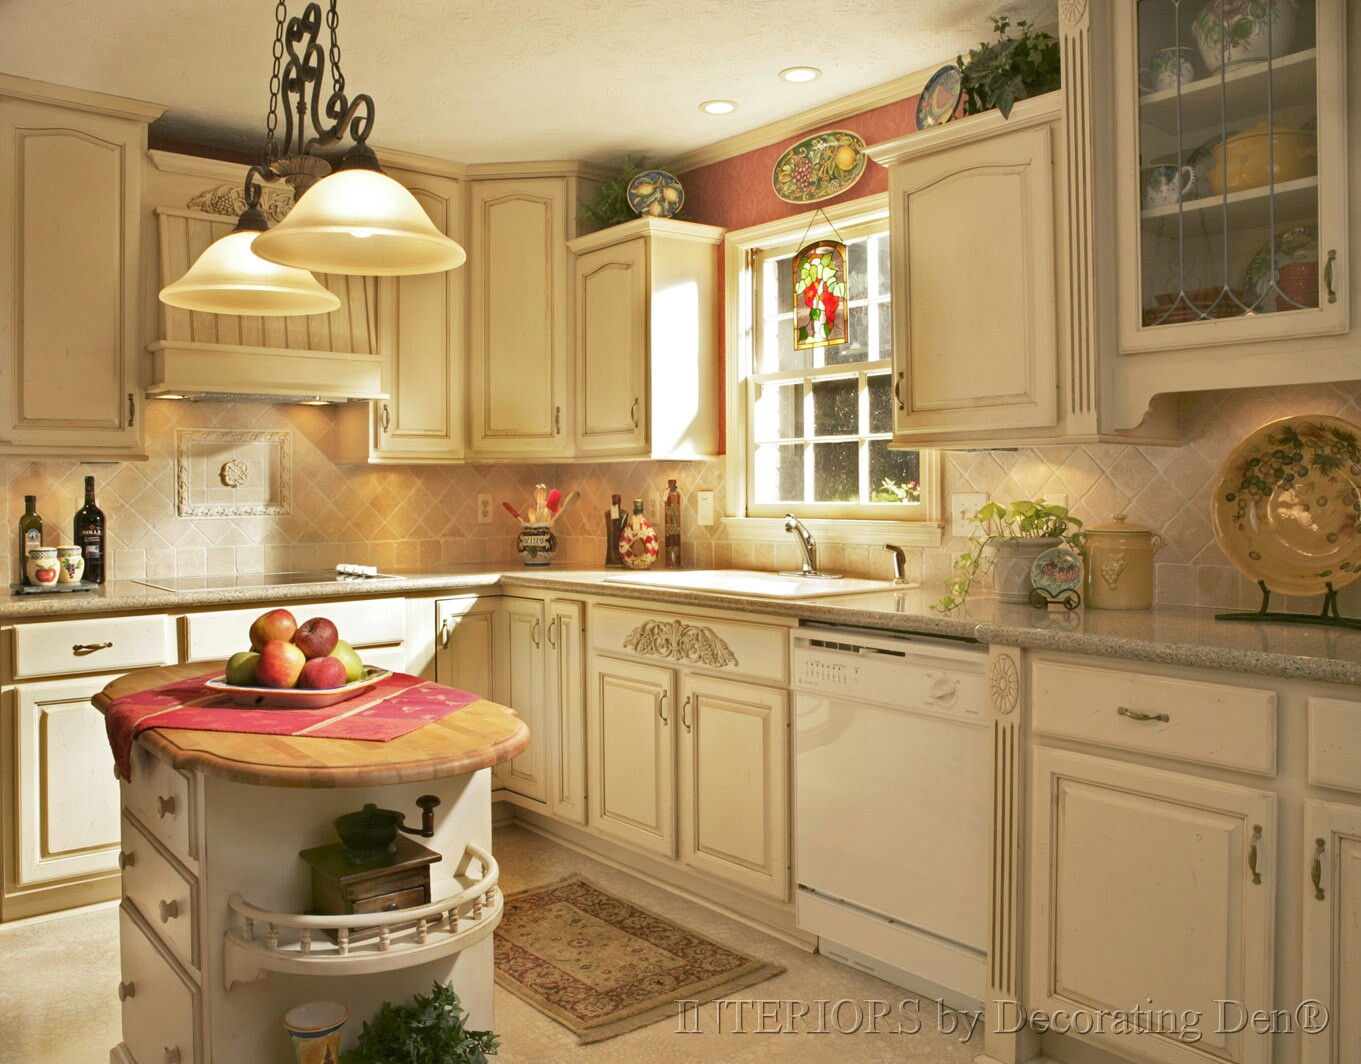 Important kitchen interior design components final article in series how to tie it all Help design kitchen colors